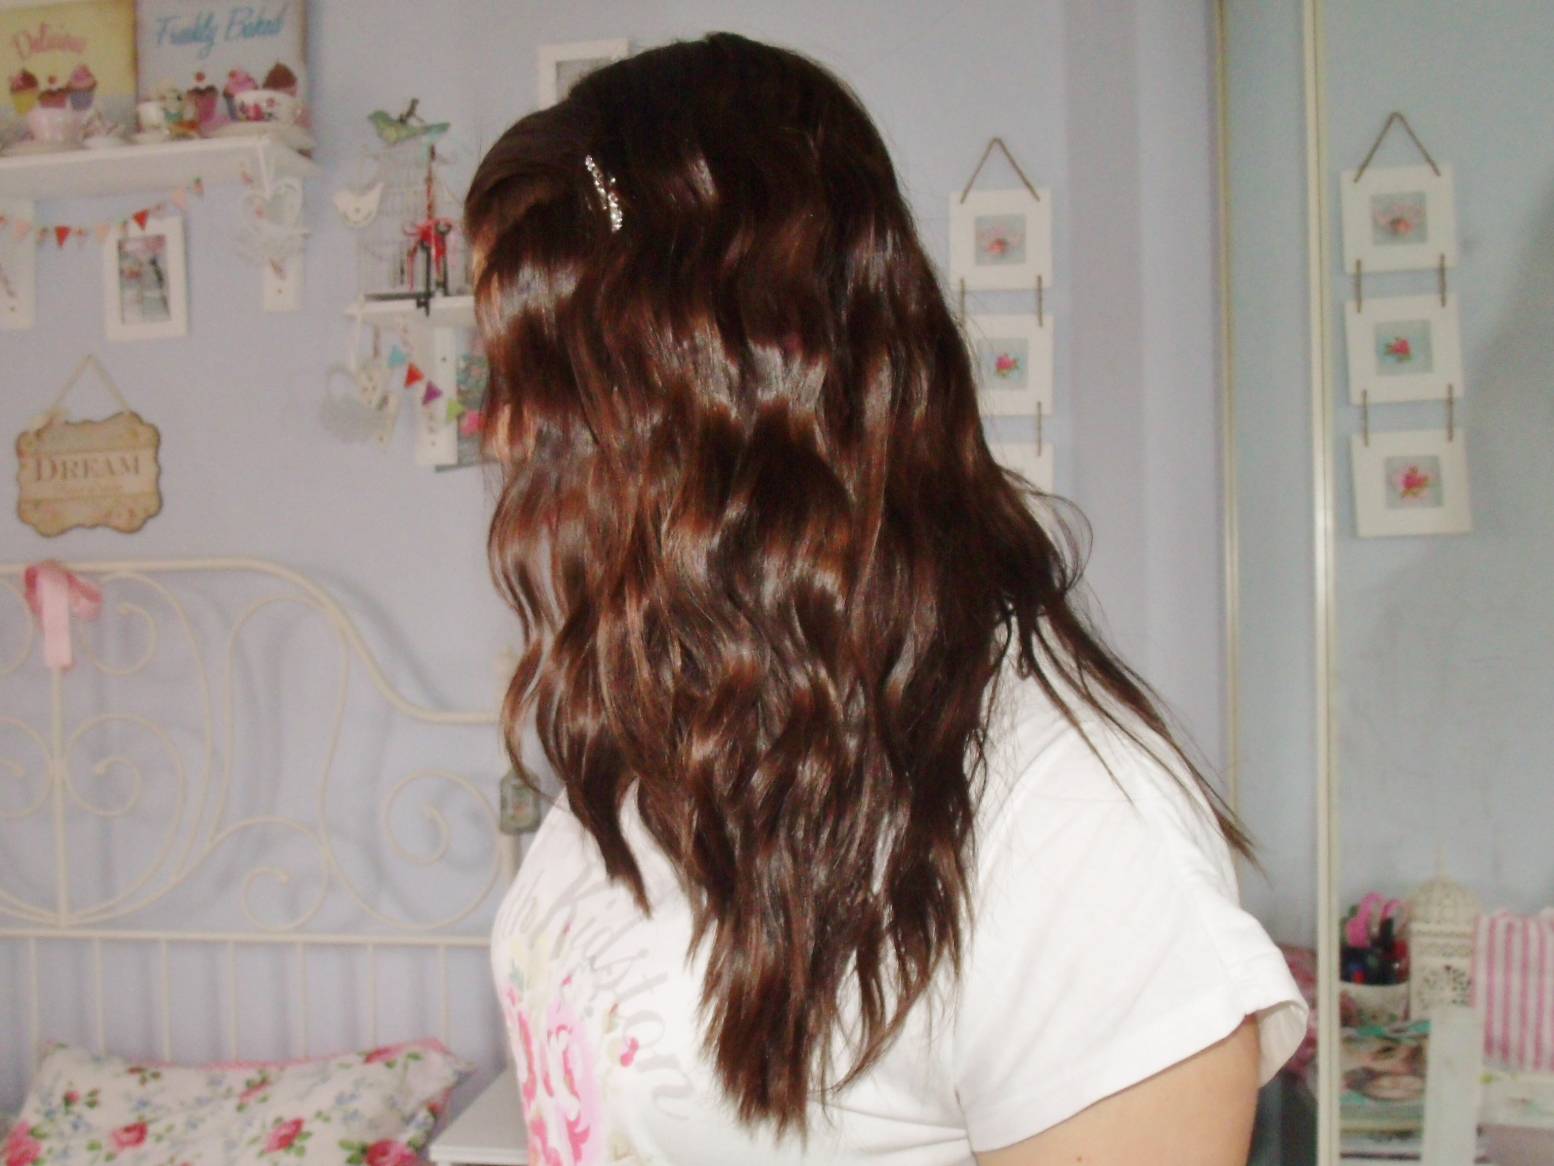 Displaying 20> Images For - Hair Waver Results...